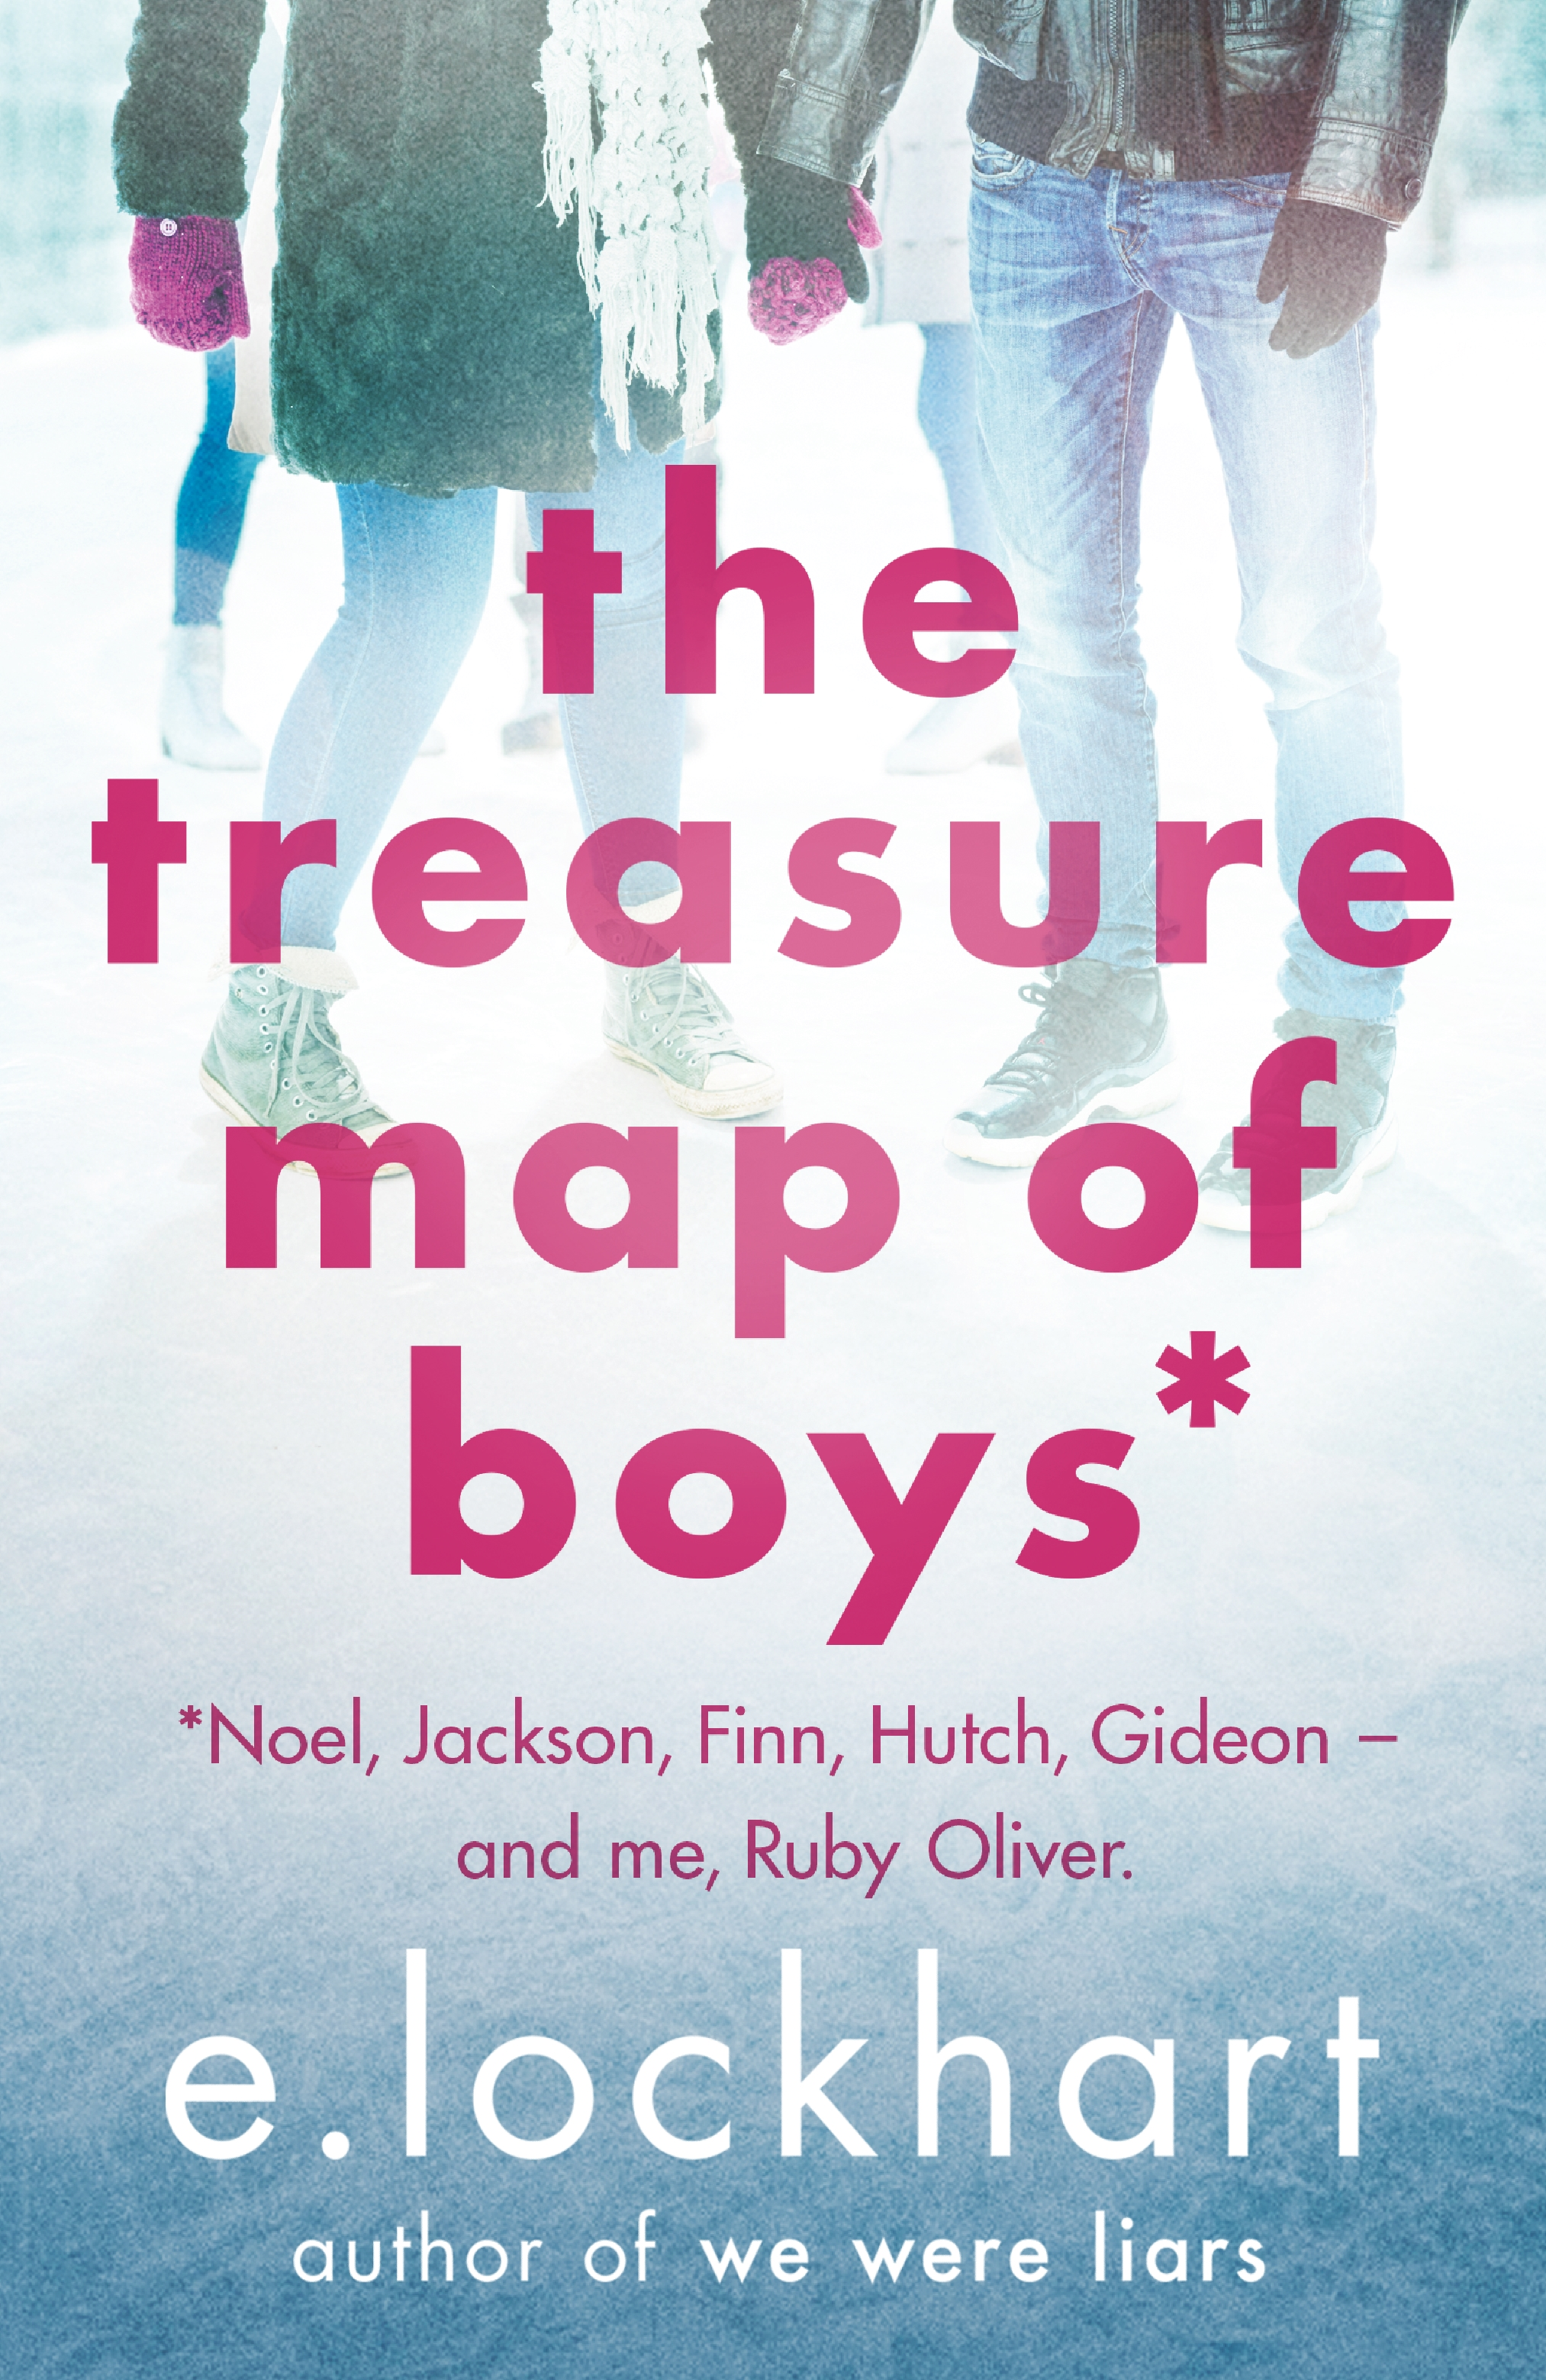 Ruby Oliver 3: The Treasure Map of Boys by E. LockhartEmily Jenkins